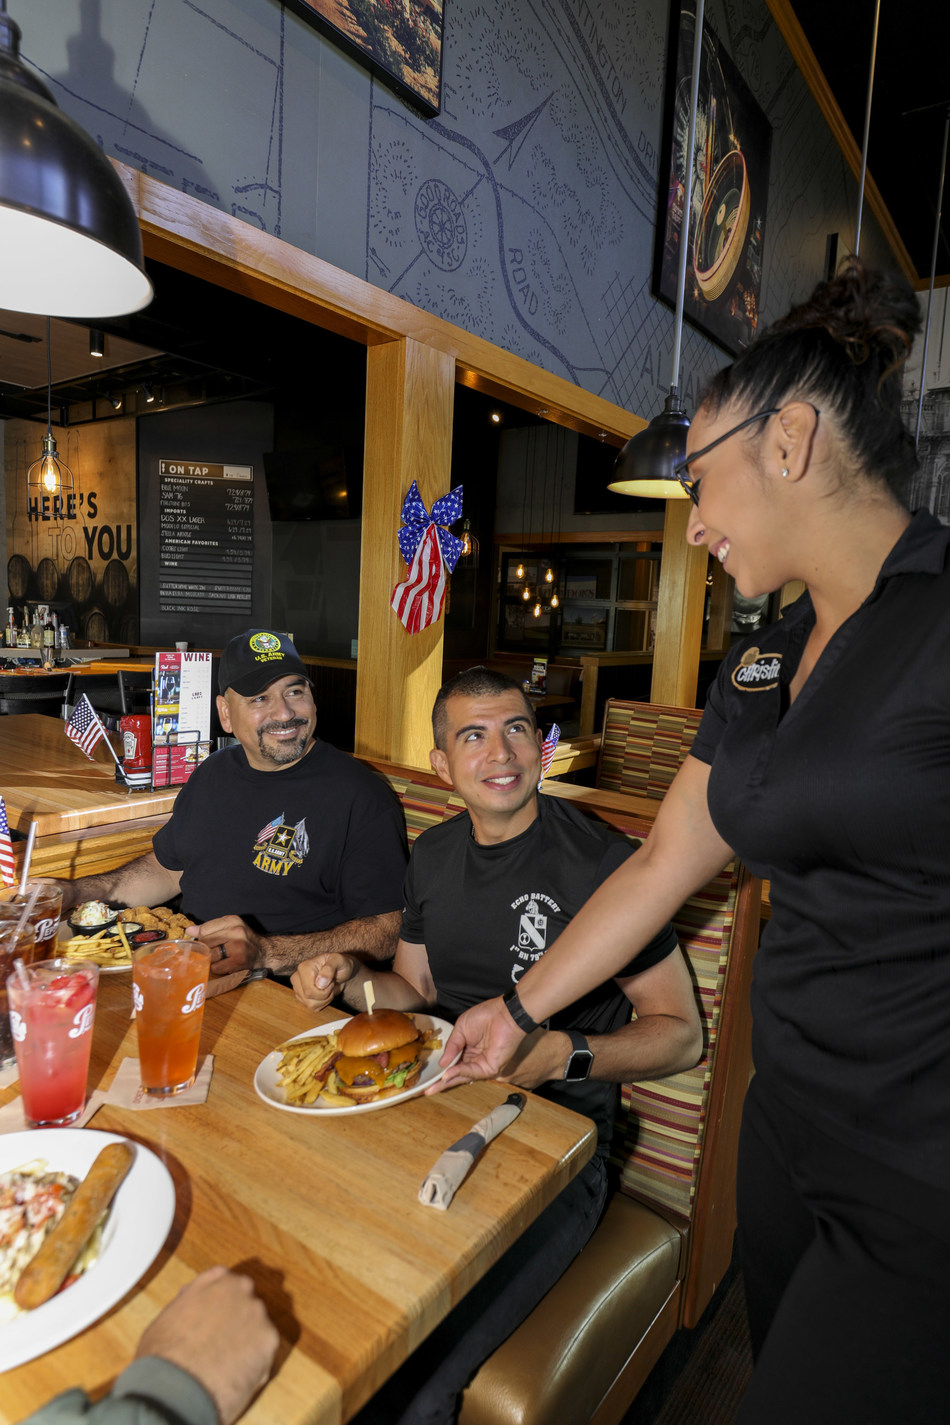 Applebee's® Neighborhood Grill & Bar is bringing communities together this Veterans Day by aiming to serve one million free meals to military heroes